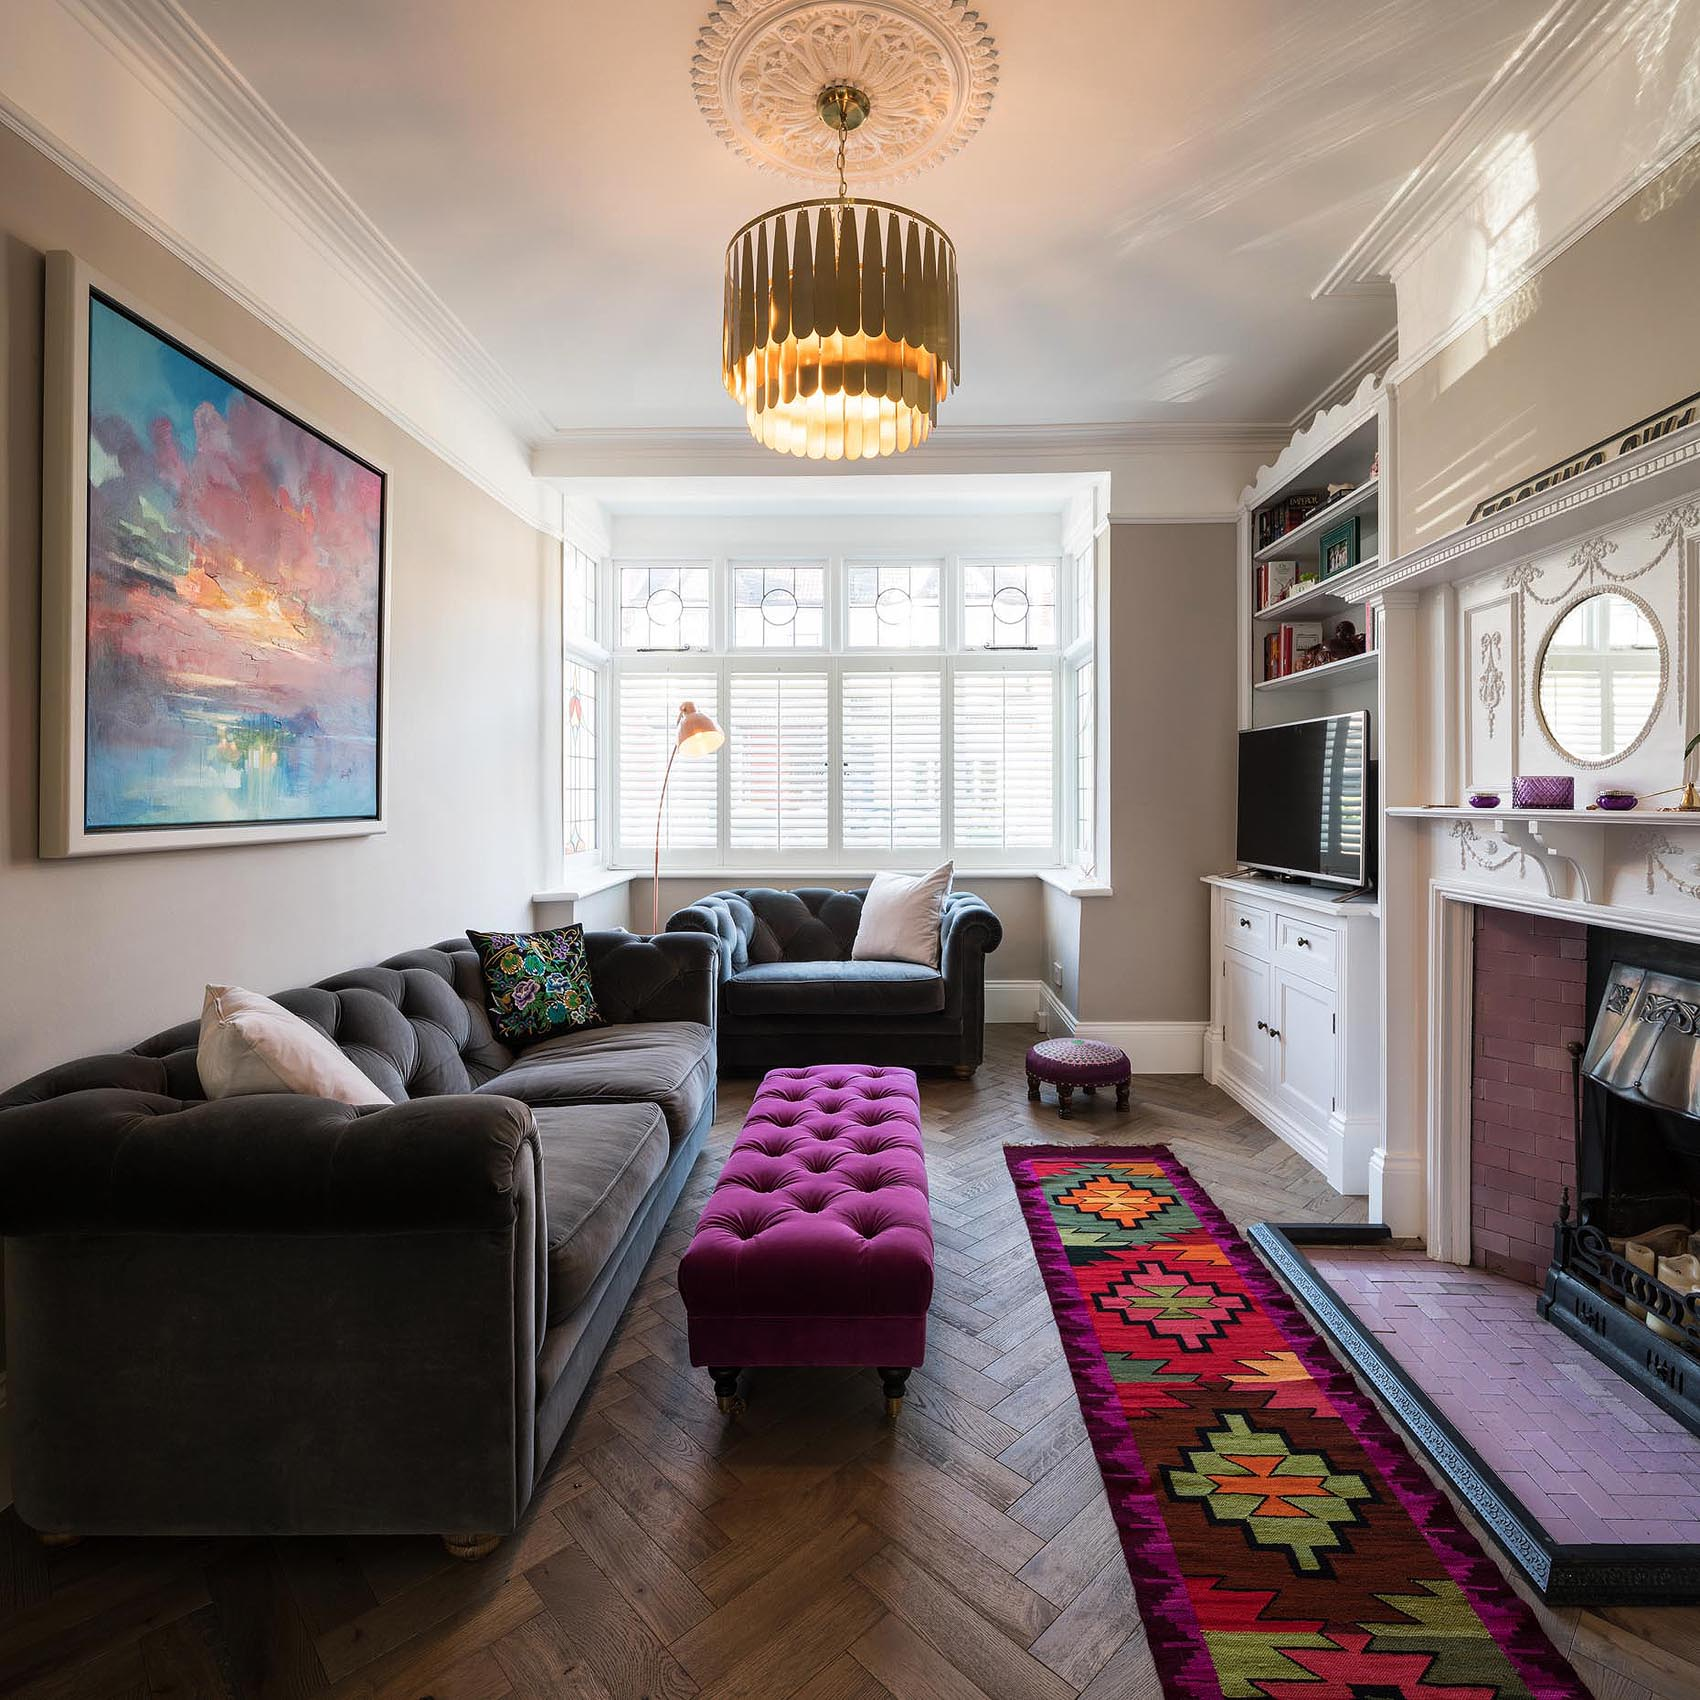 living-room-velvet-colour-herringbone-floor-interior-photographer-london-uk